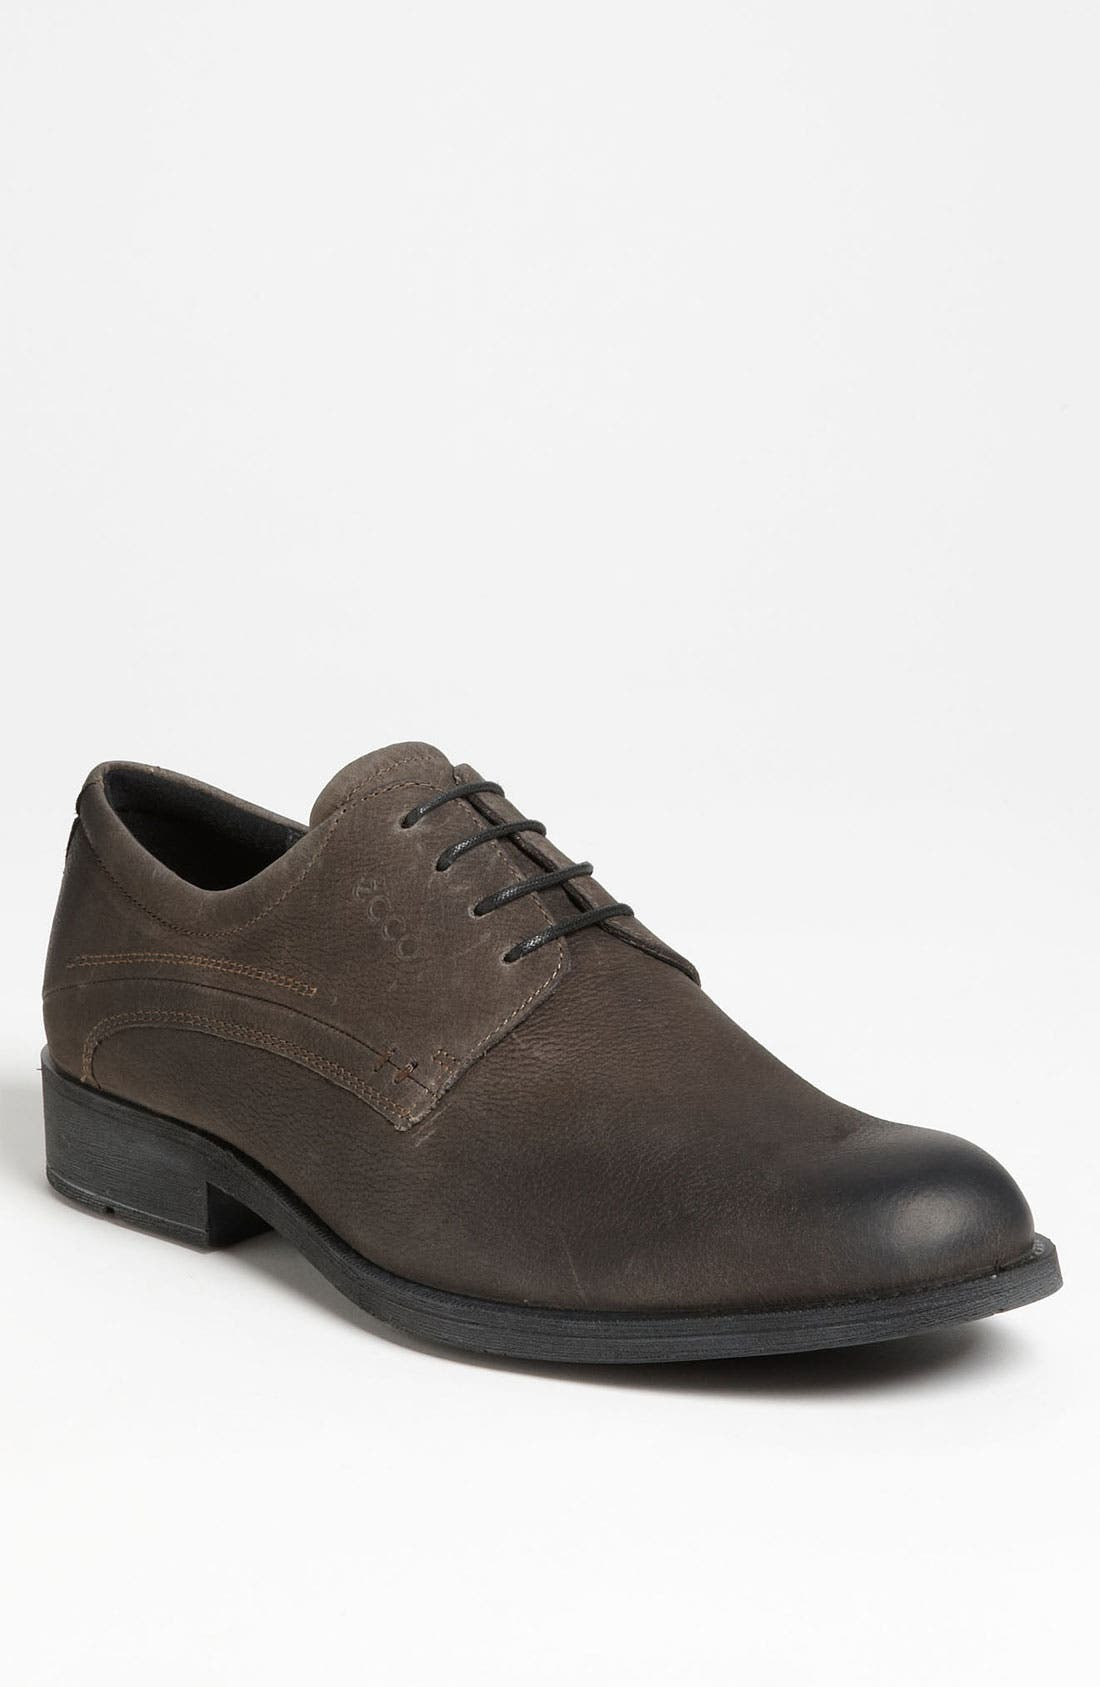 Alternate Image 1 Selected - ECCO 'Birmingham' Buck Shoe